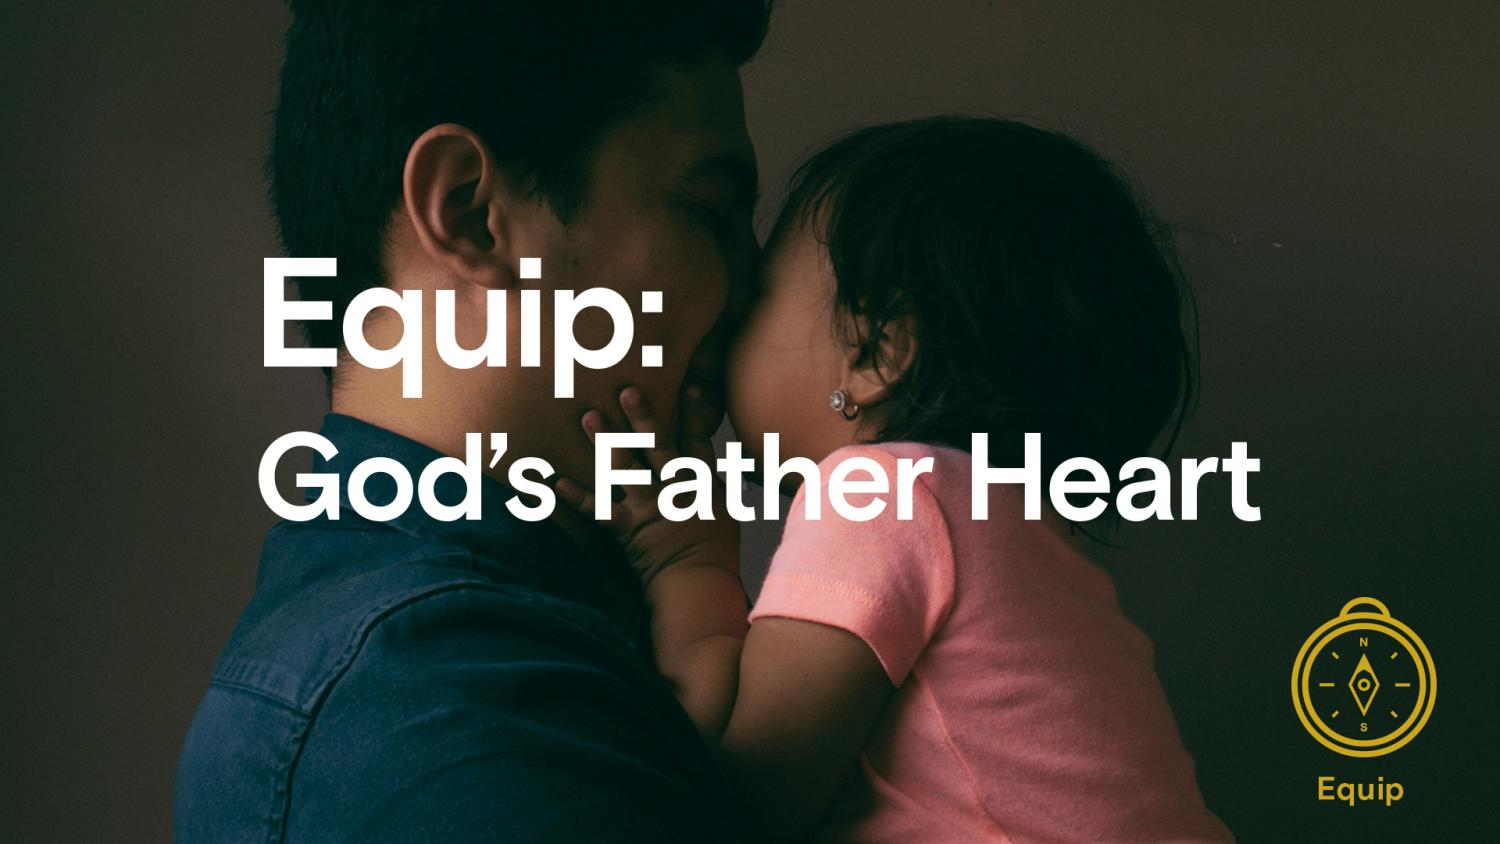 Equip: God's Father Heart